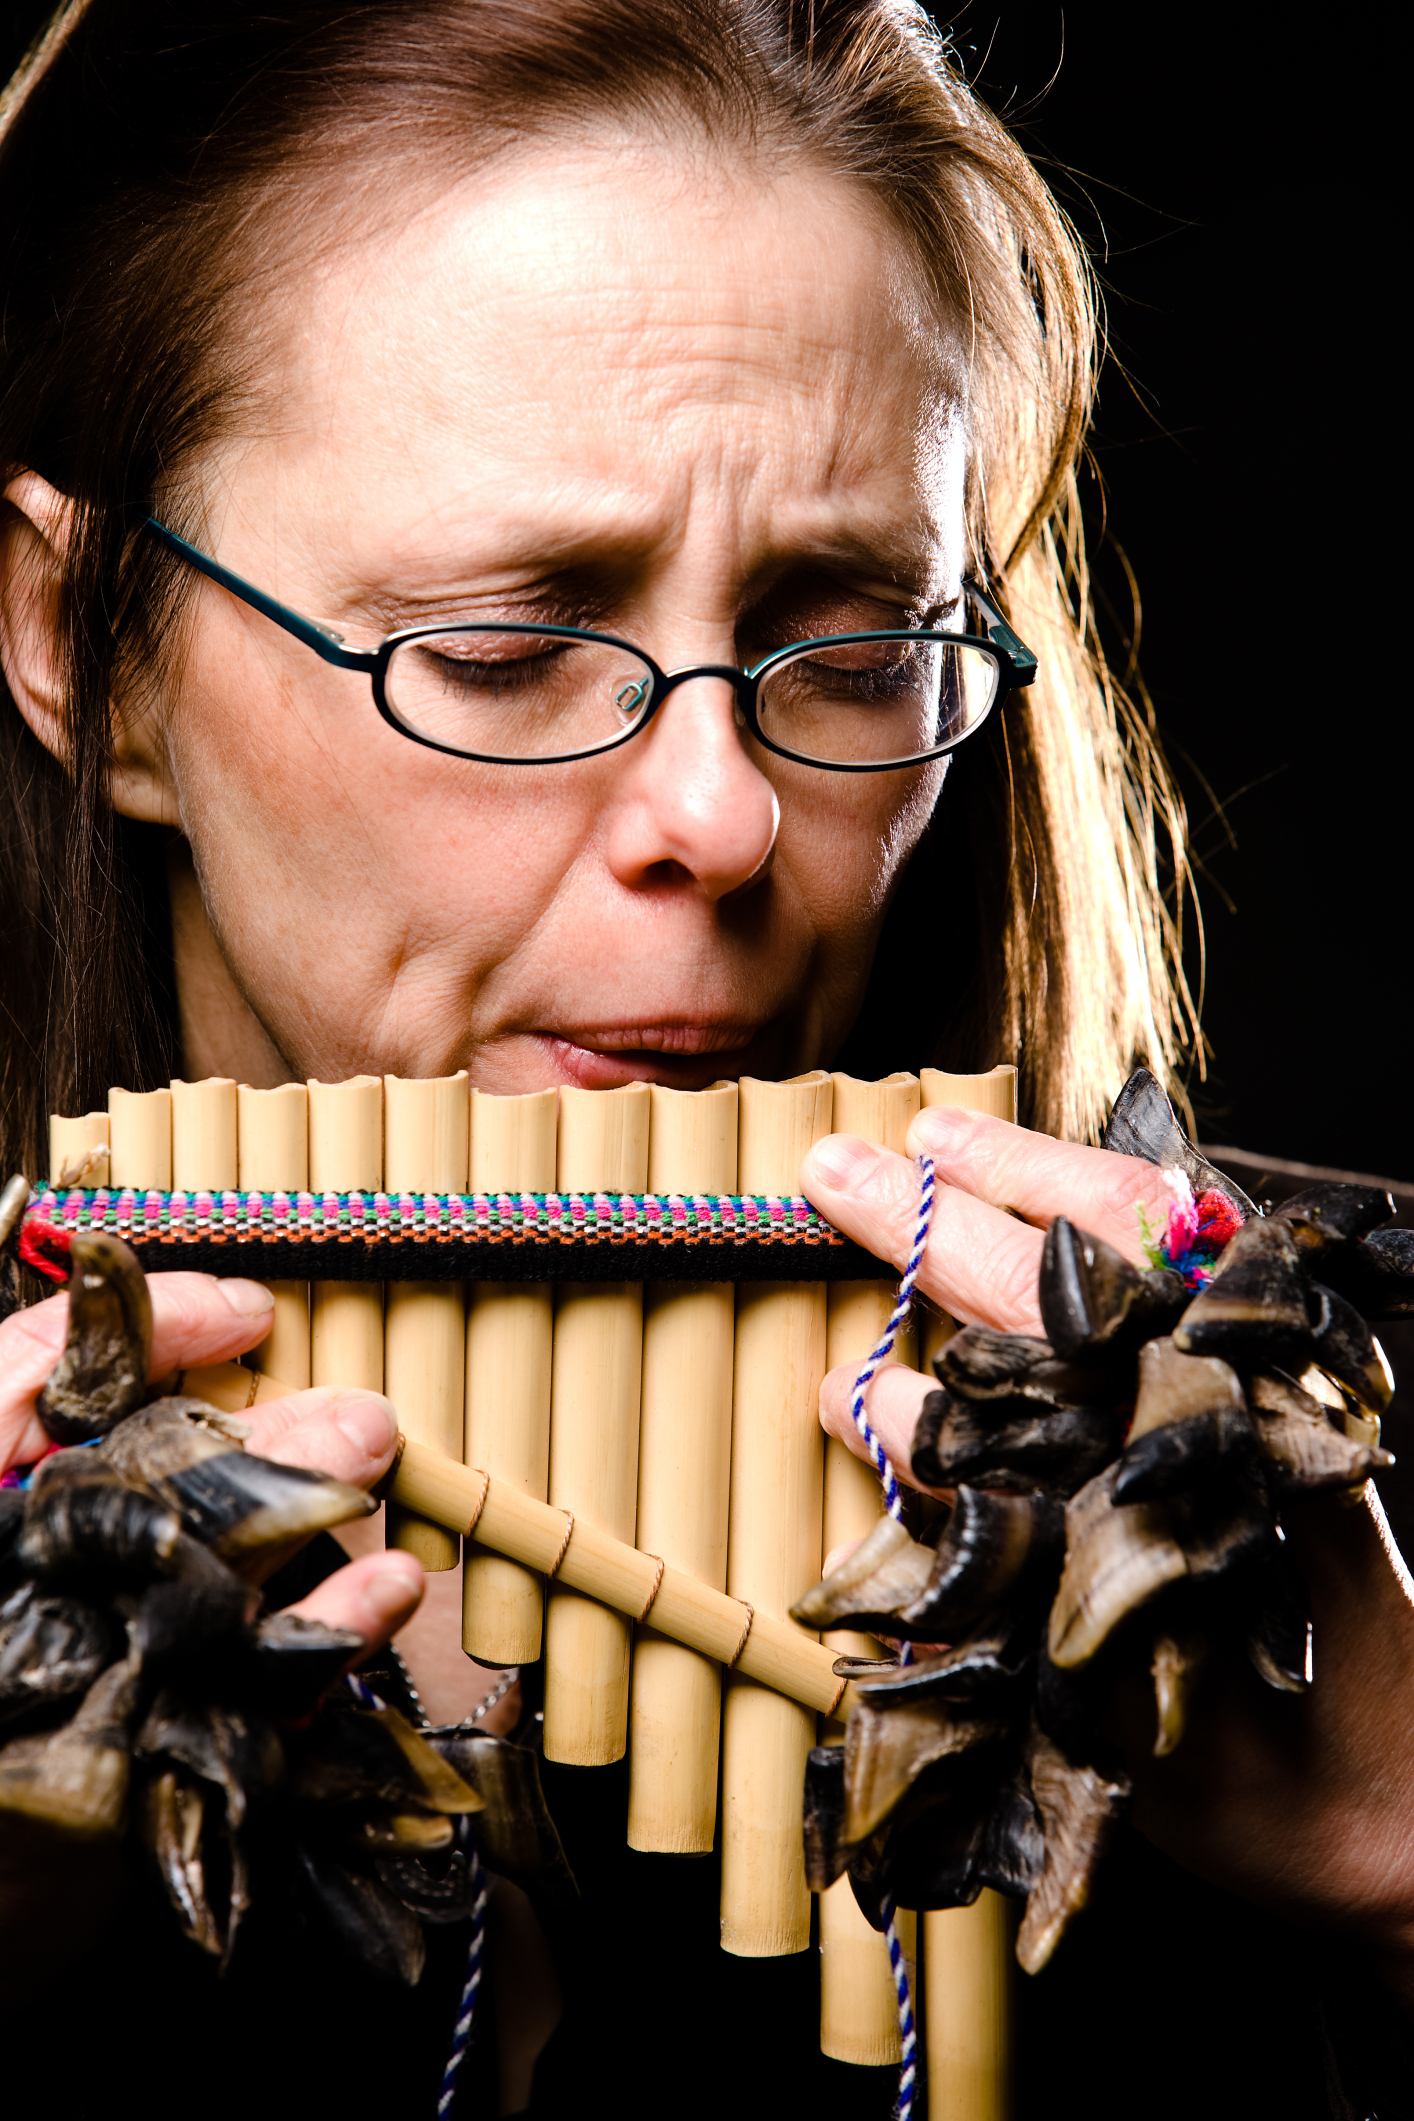 How to Make an Eight Note Pan Flute Out of PVC Pipes | Our